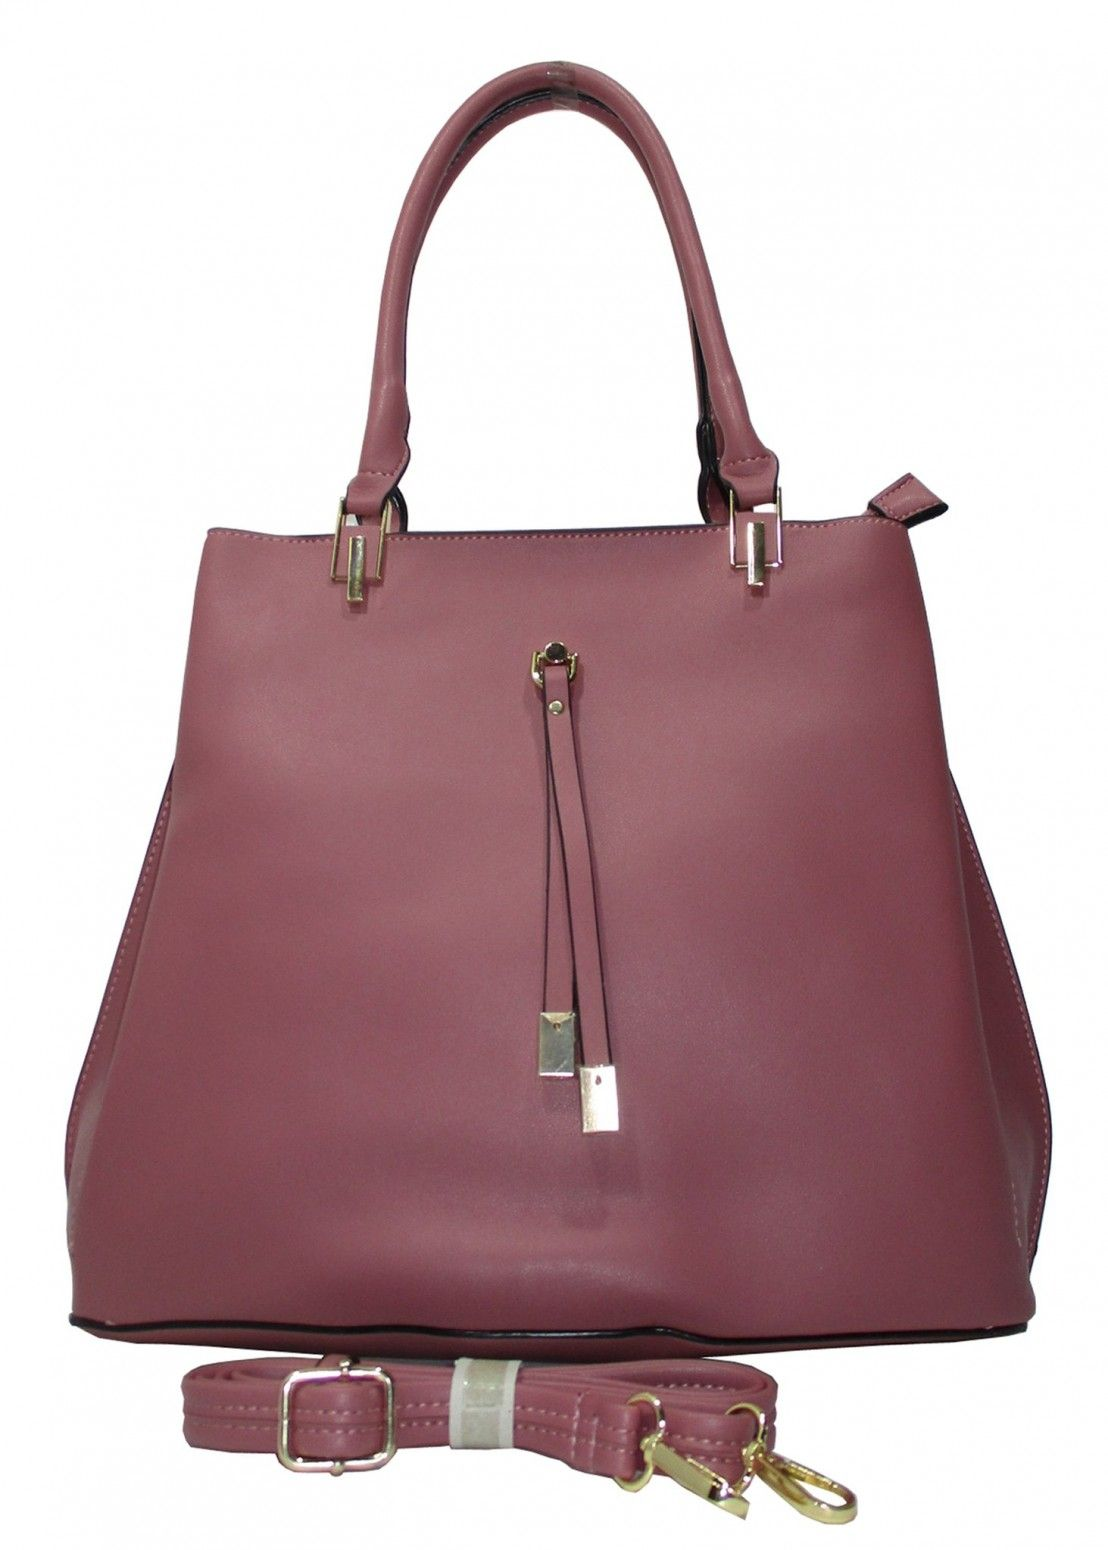 Just Arrived Branded Handbags Online At Low Prices In India On Winsant Fastest